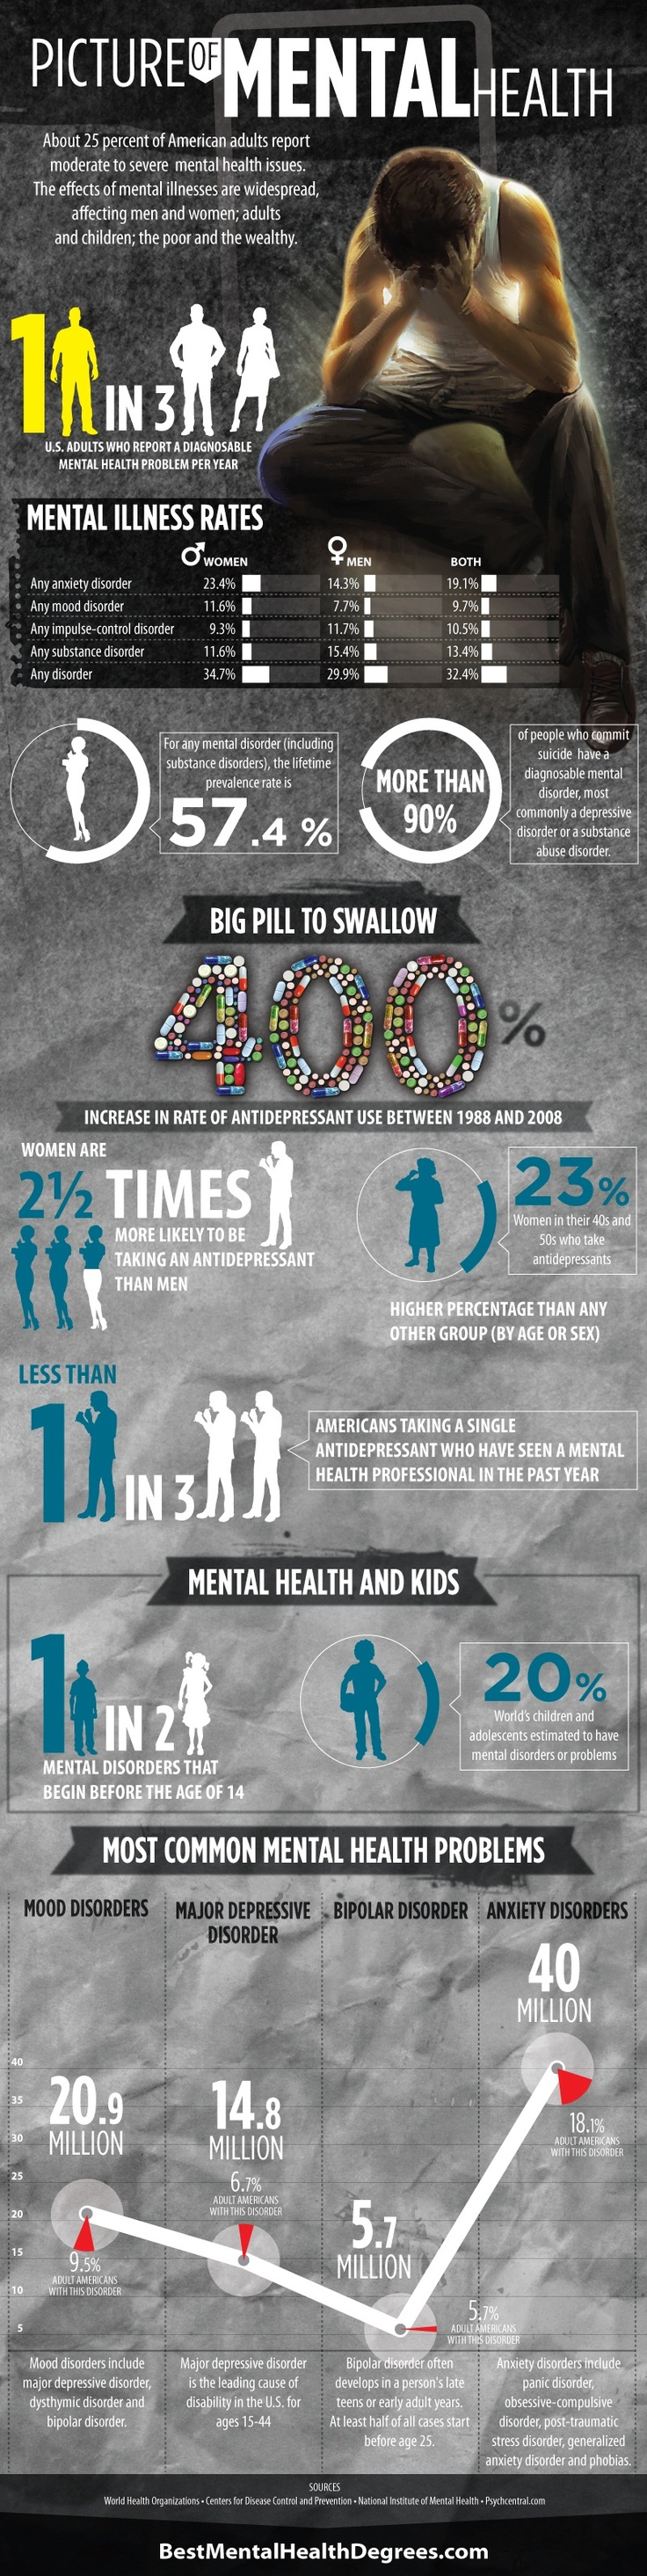 #Mental #Health #Infographic